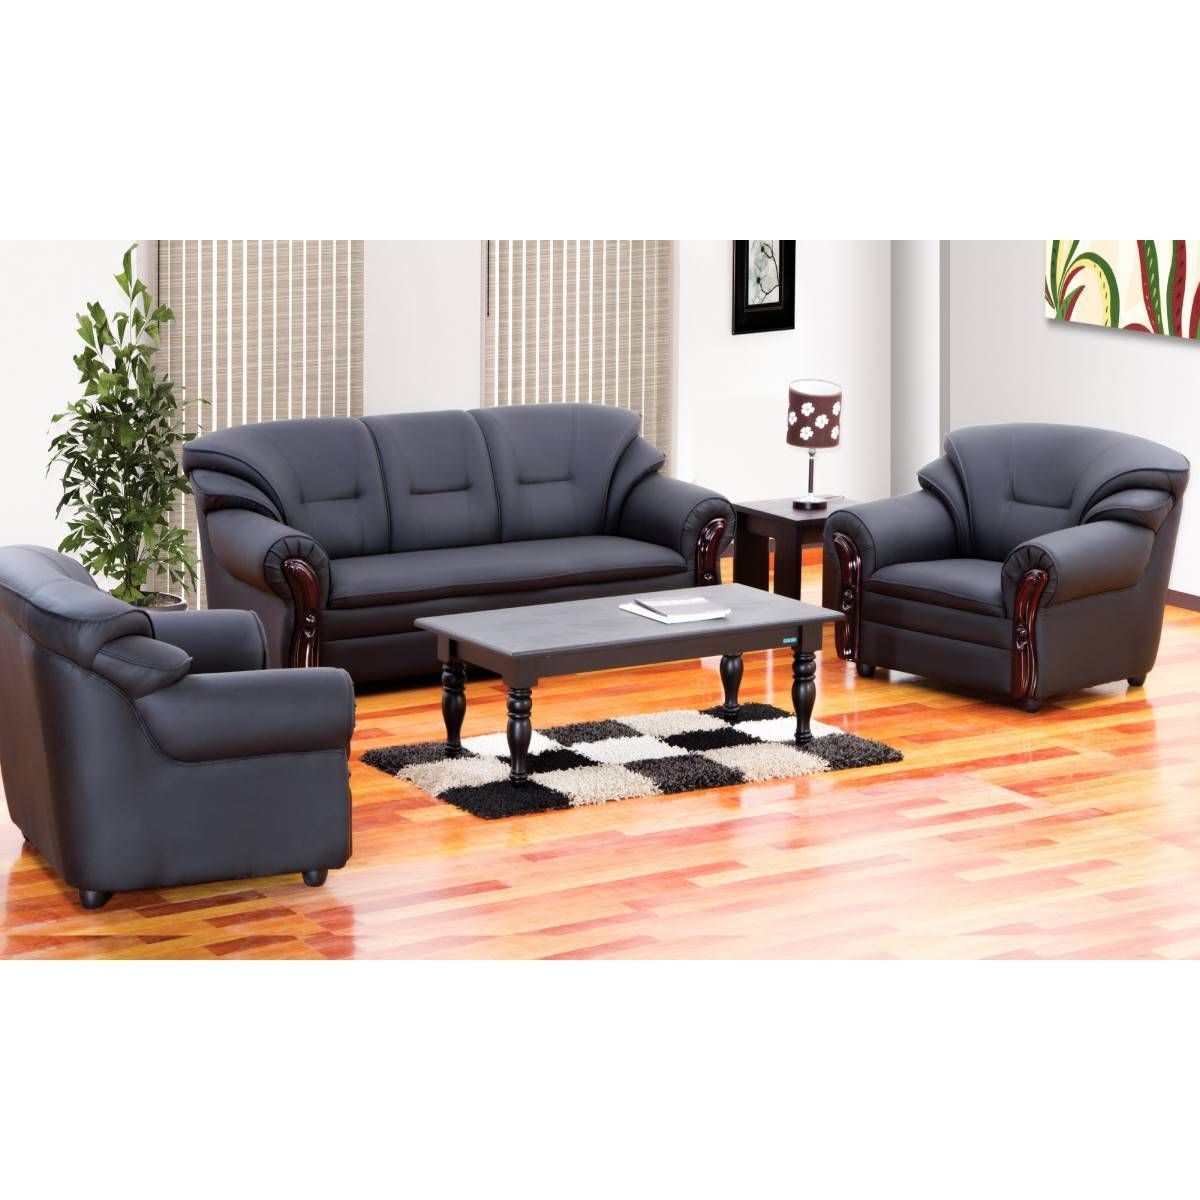 Damro Sofa Set Designs In Sri Lanka In 2020 Sofa Set Sofa Set Designs Sofa Pictures